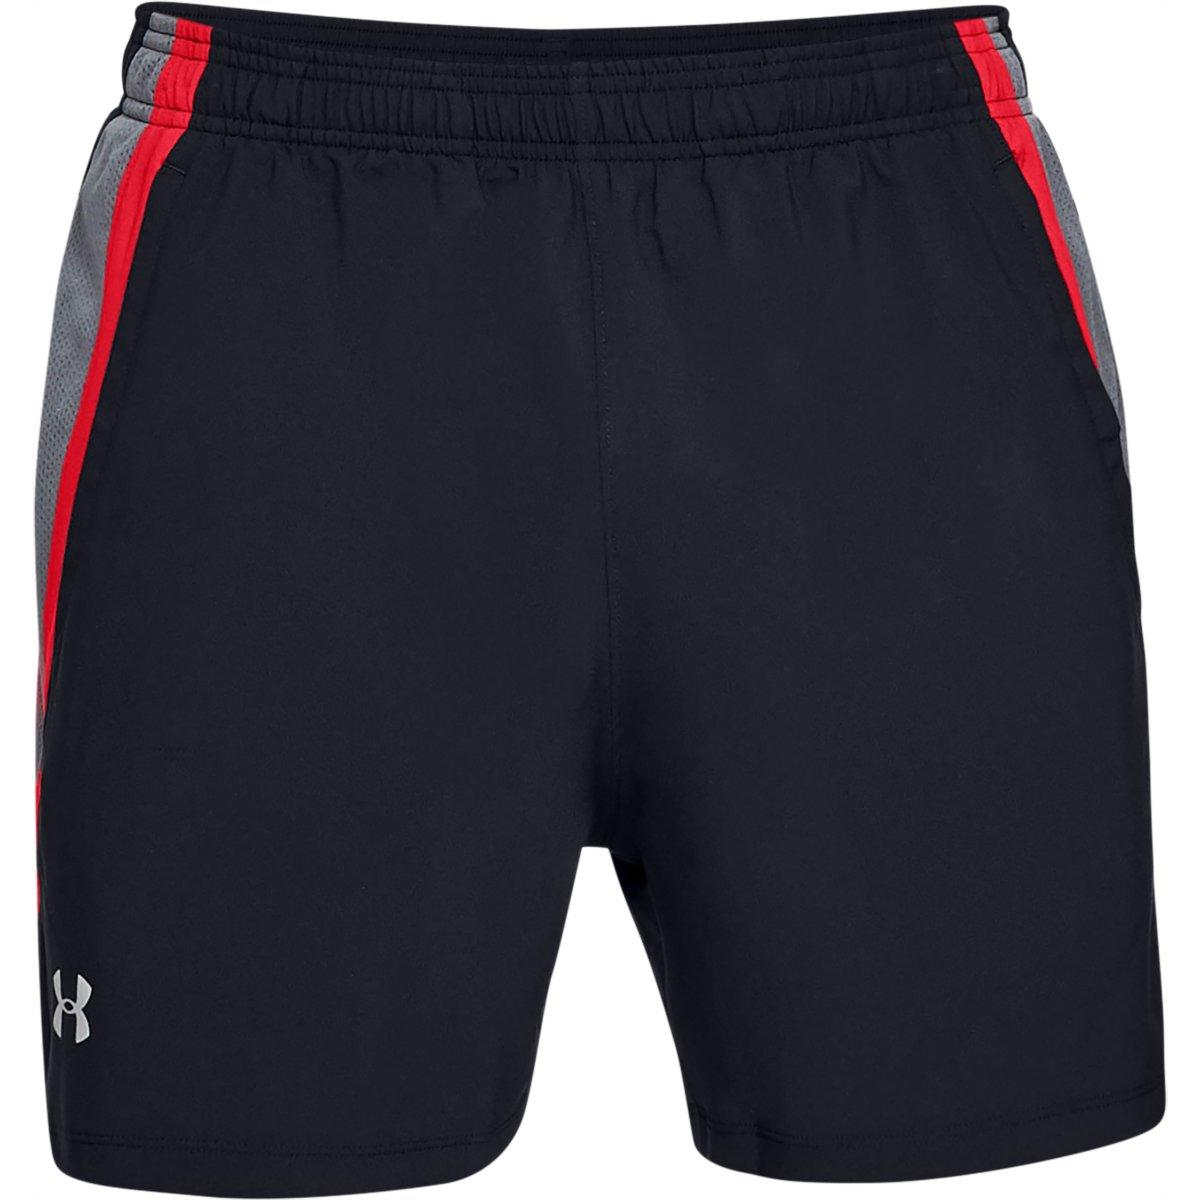 Kraťasy Under Armour Launch Sw 5'' Short, L